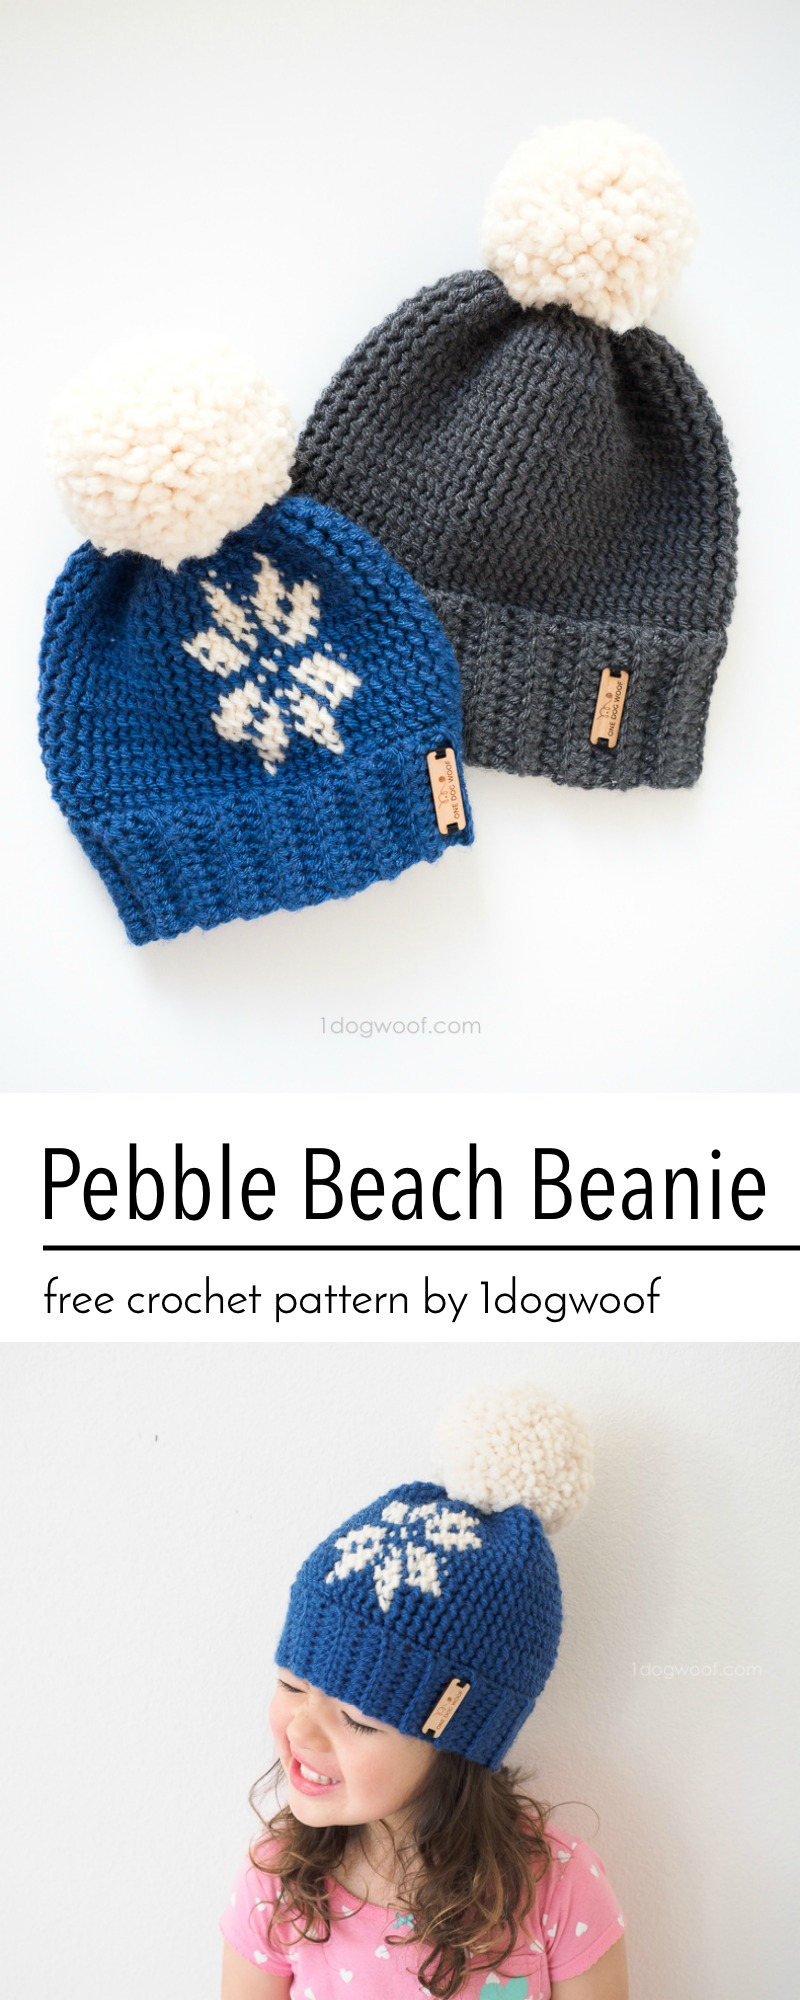 Pebble Beach Beanie Crochet Pattern - One Dog Woof